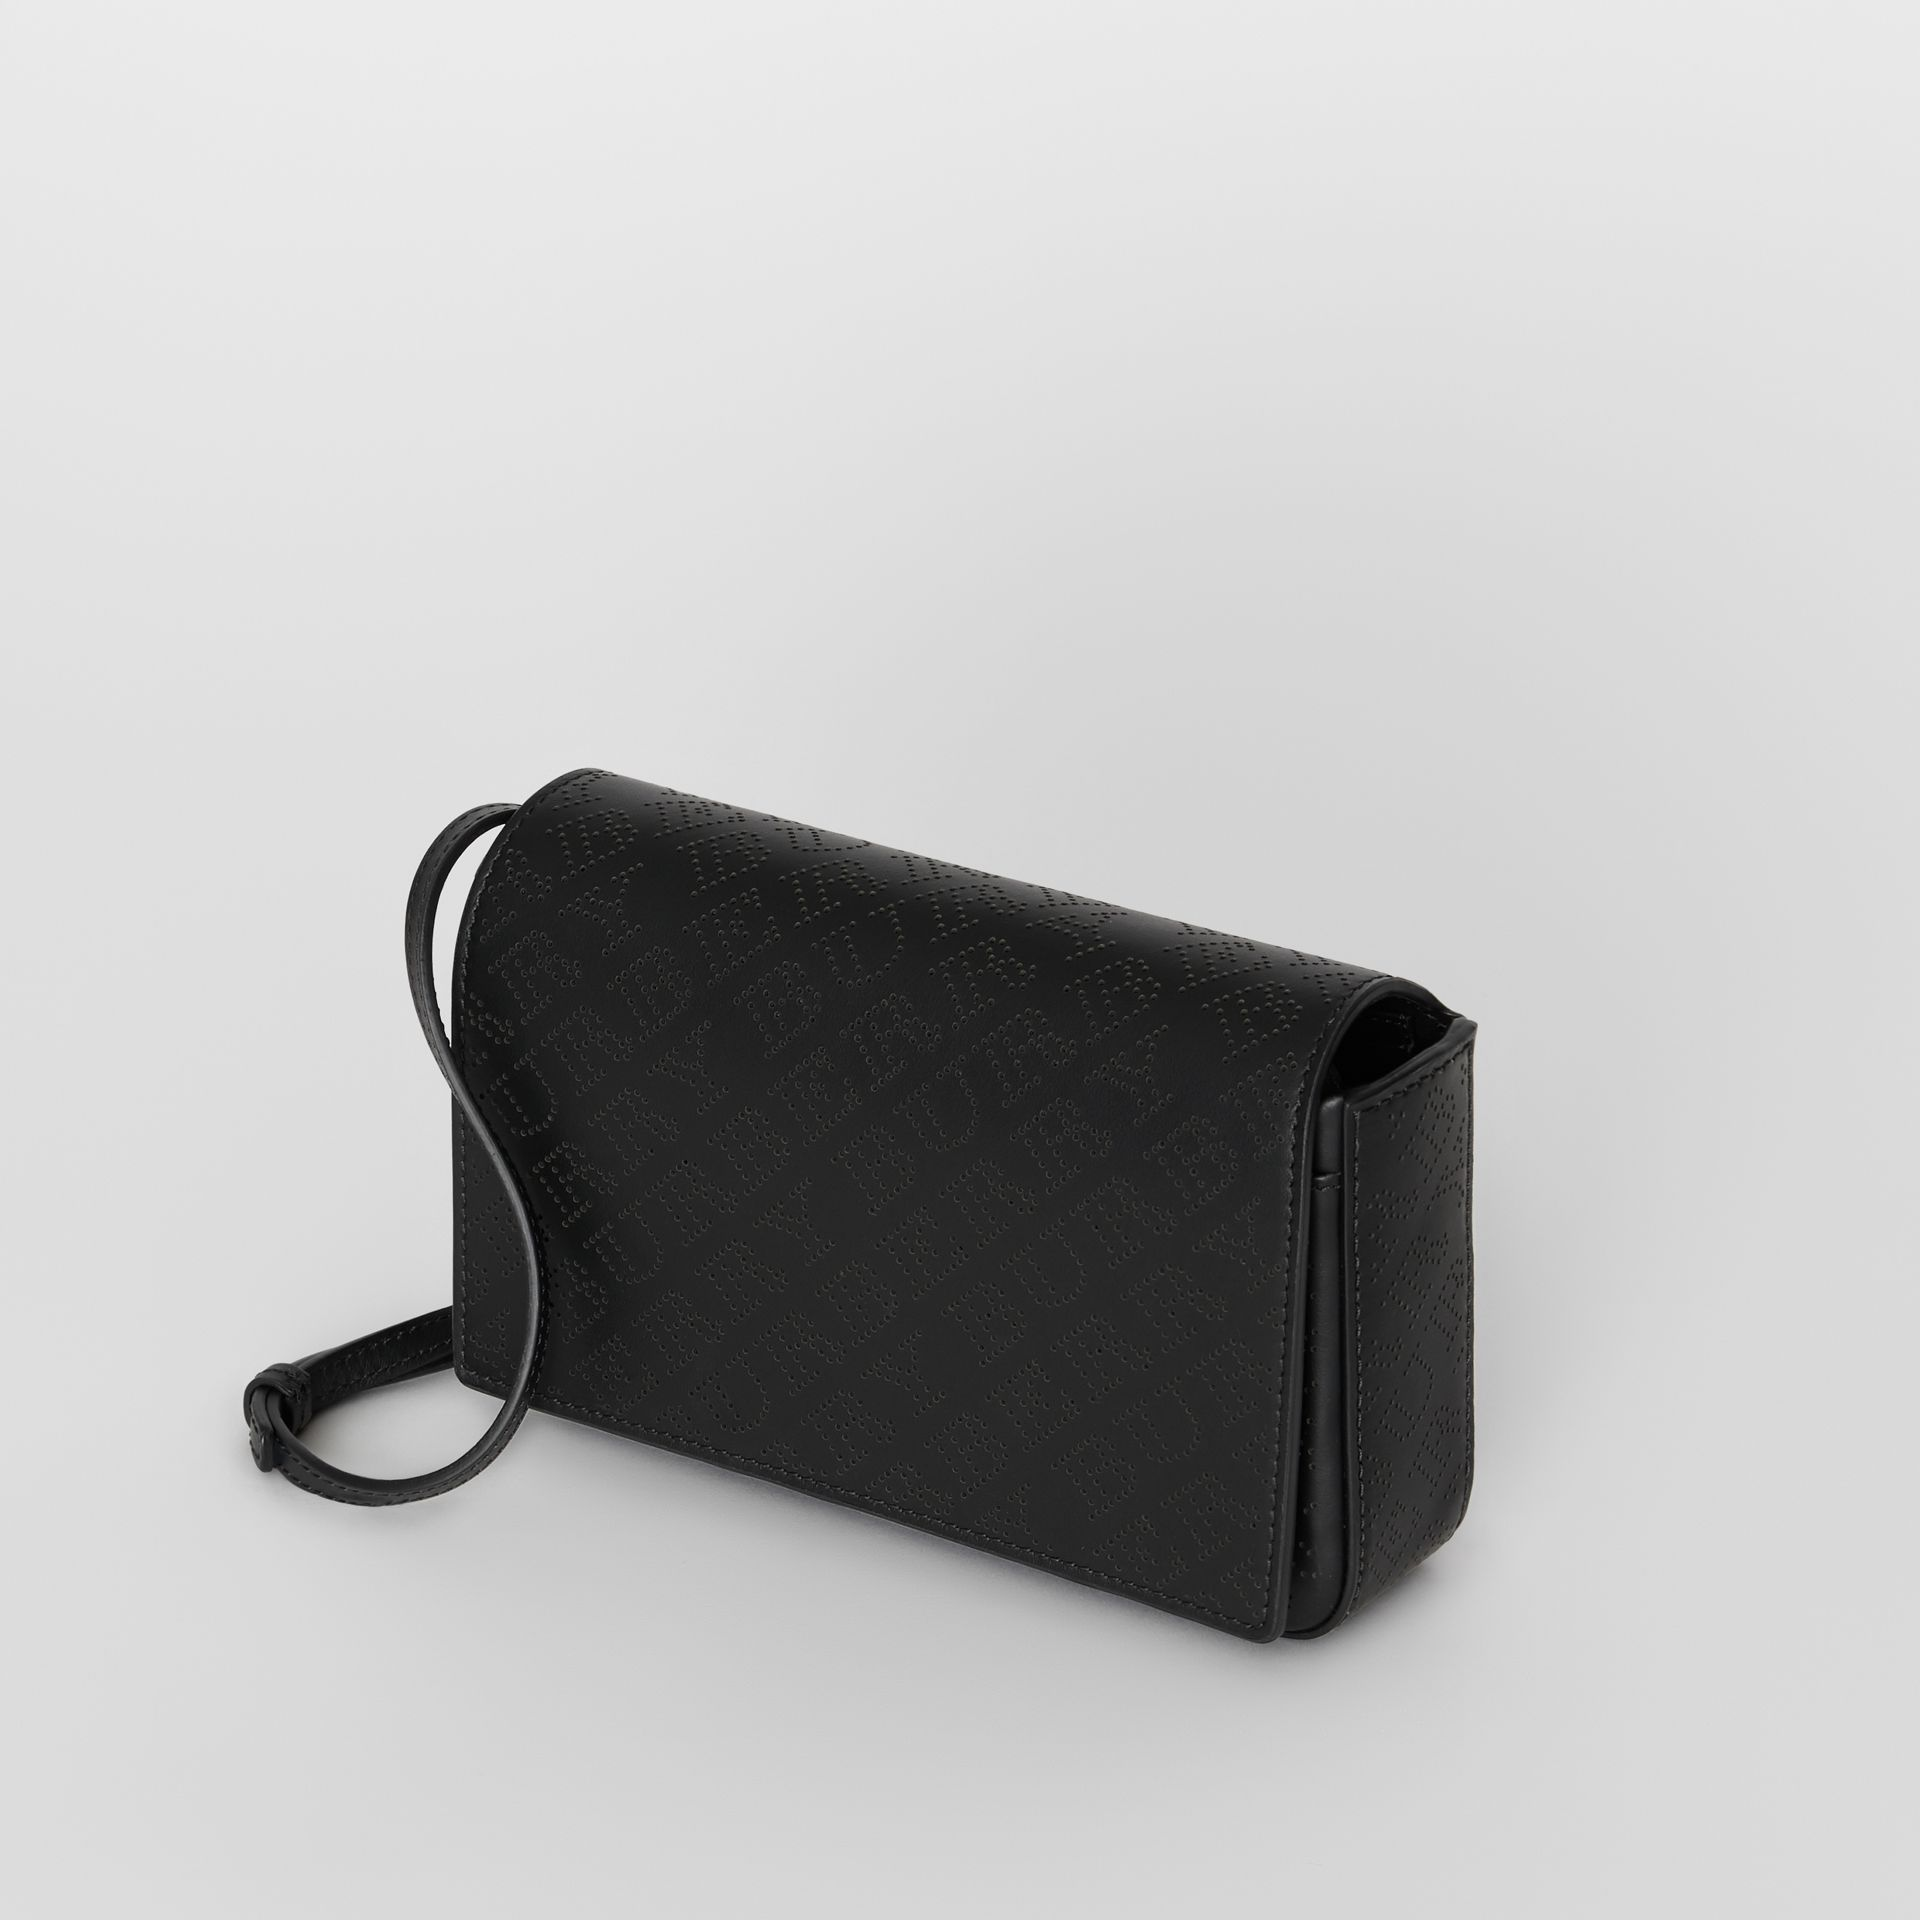 Perforated Logo Leather Wallet with Detachable Strap in Black - Women | Burberry United States - gallery image 2